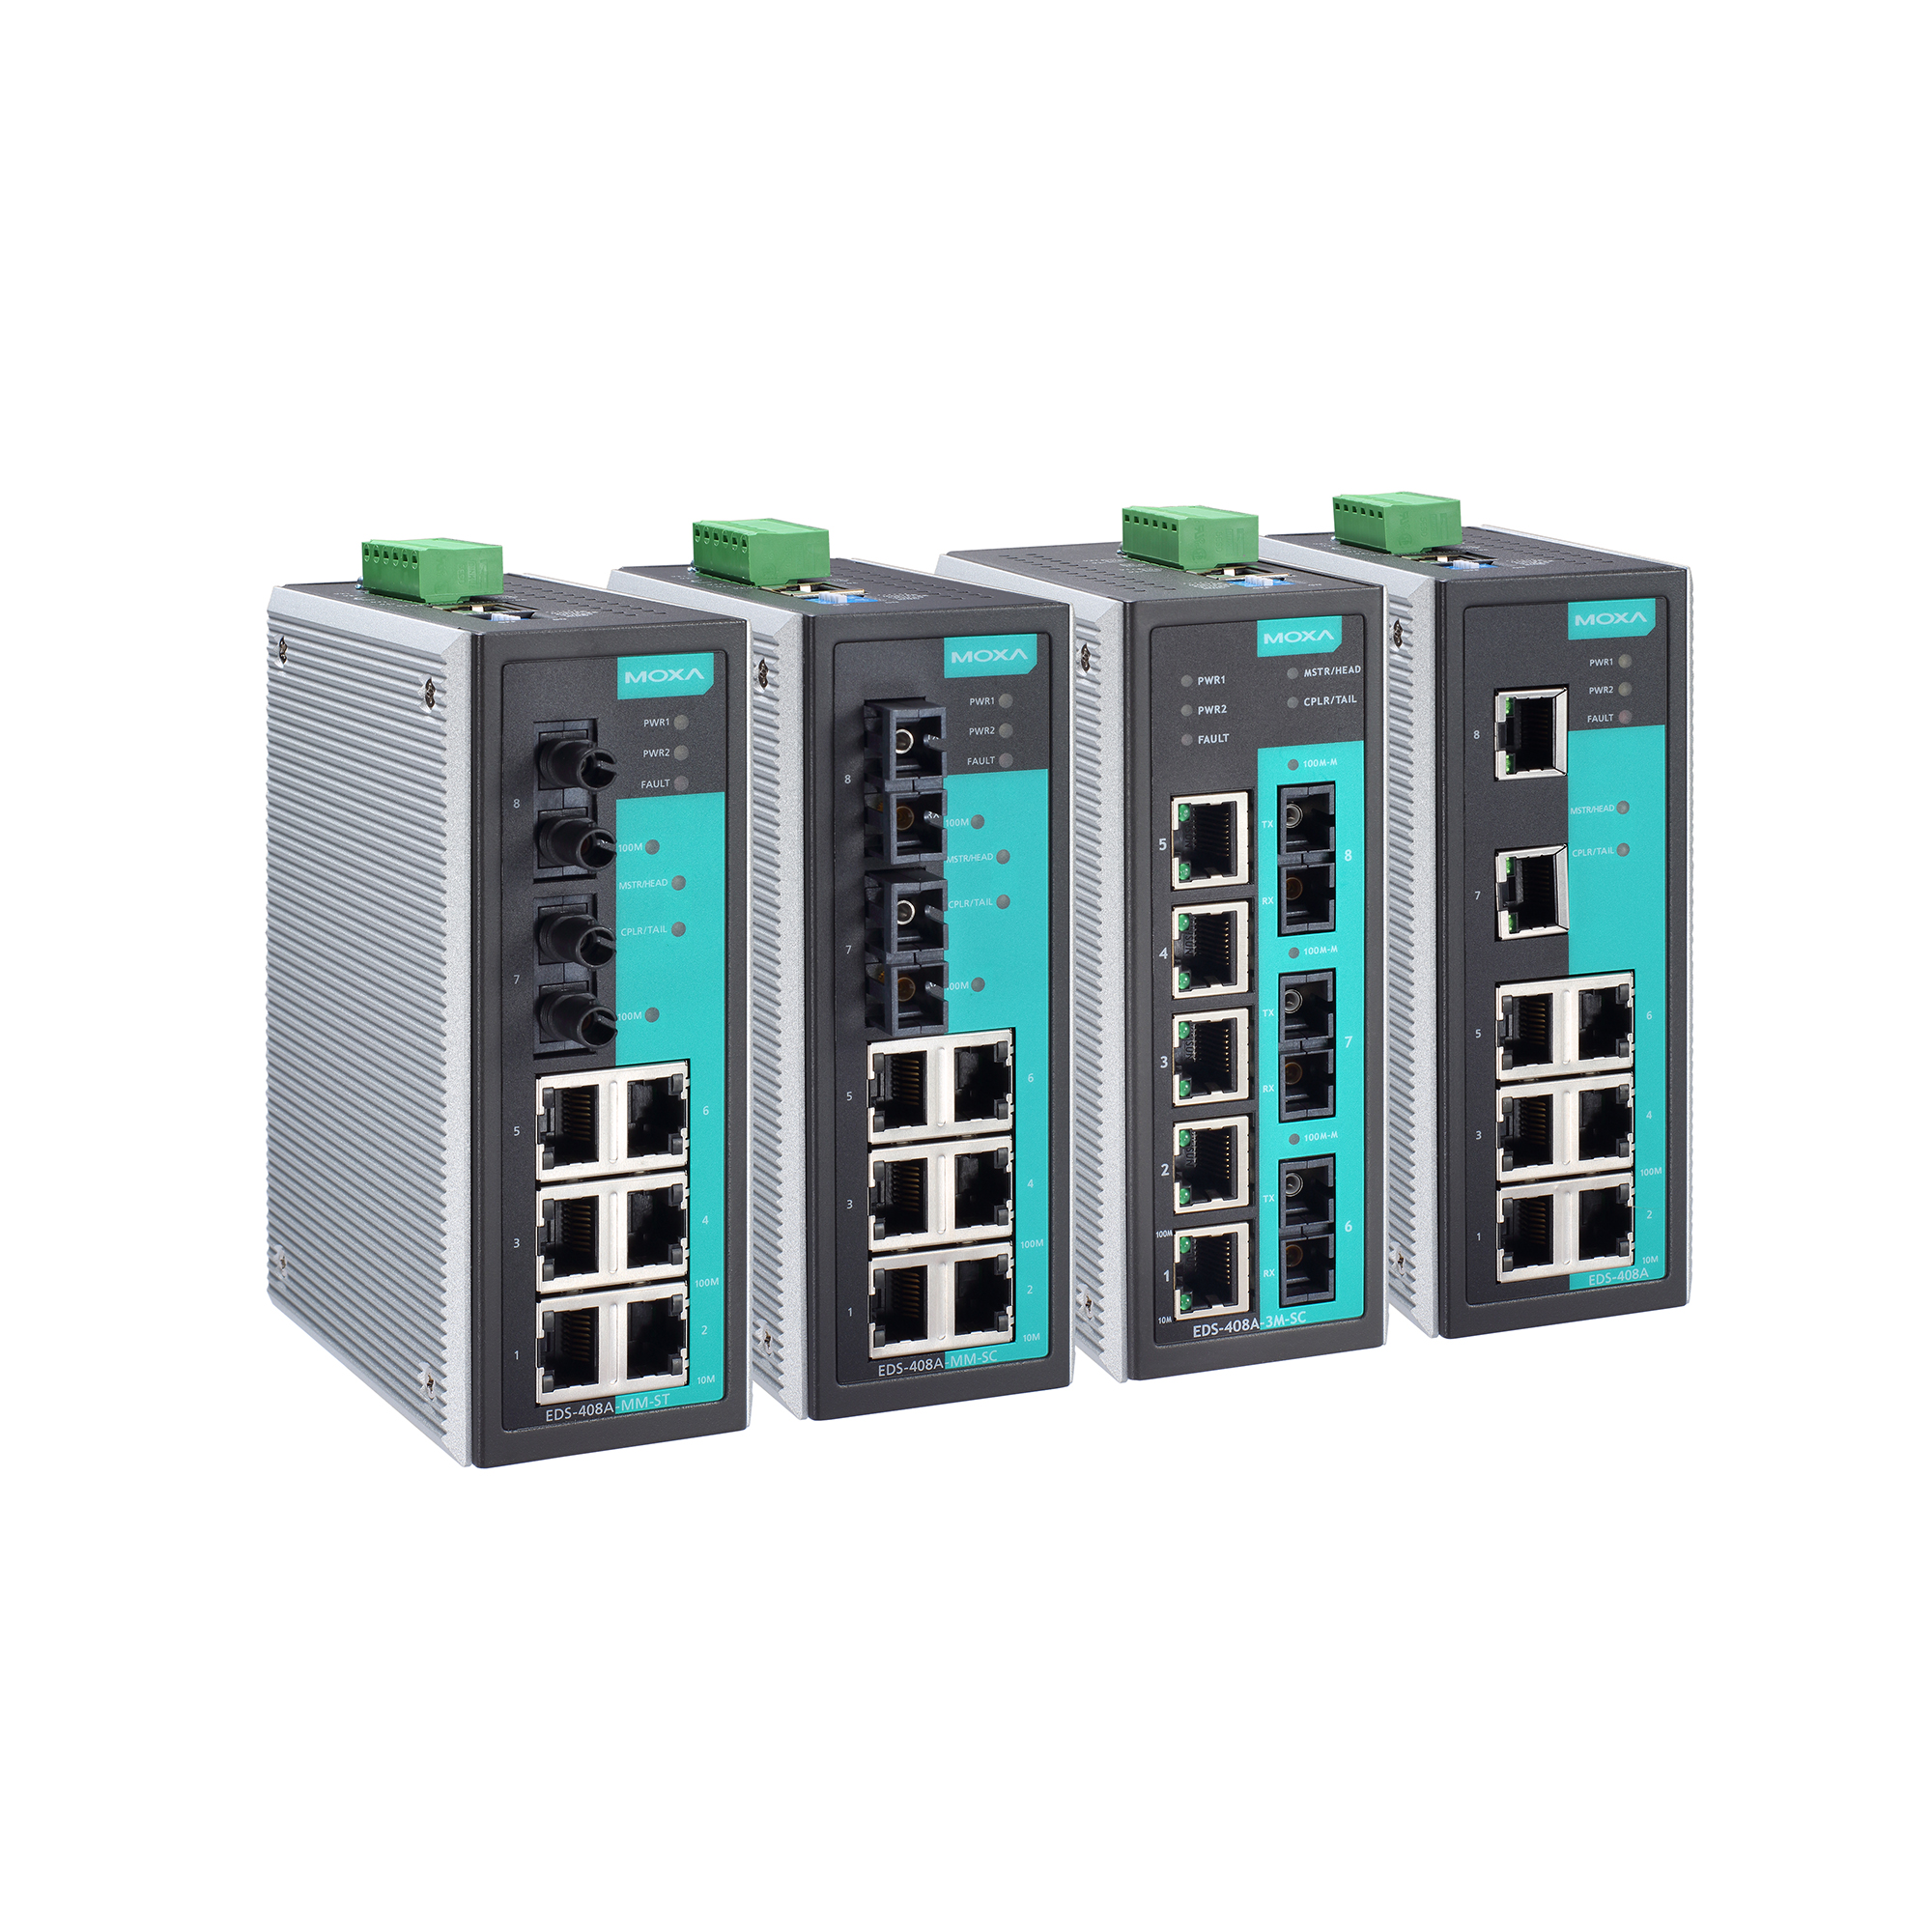 Segmüller Küchenhaus Mannheim Eds 408a Series Layer 2 Managed Switches Moxa